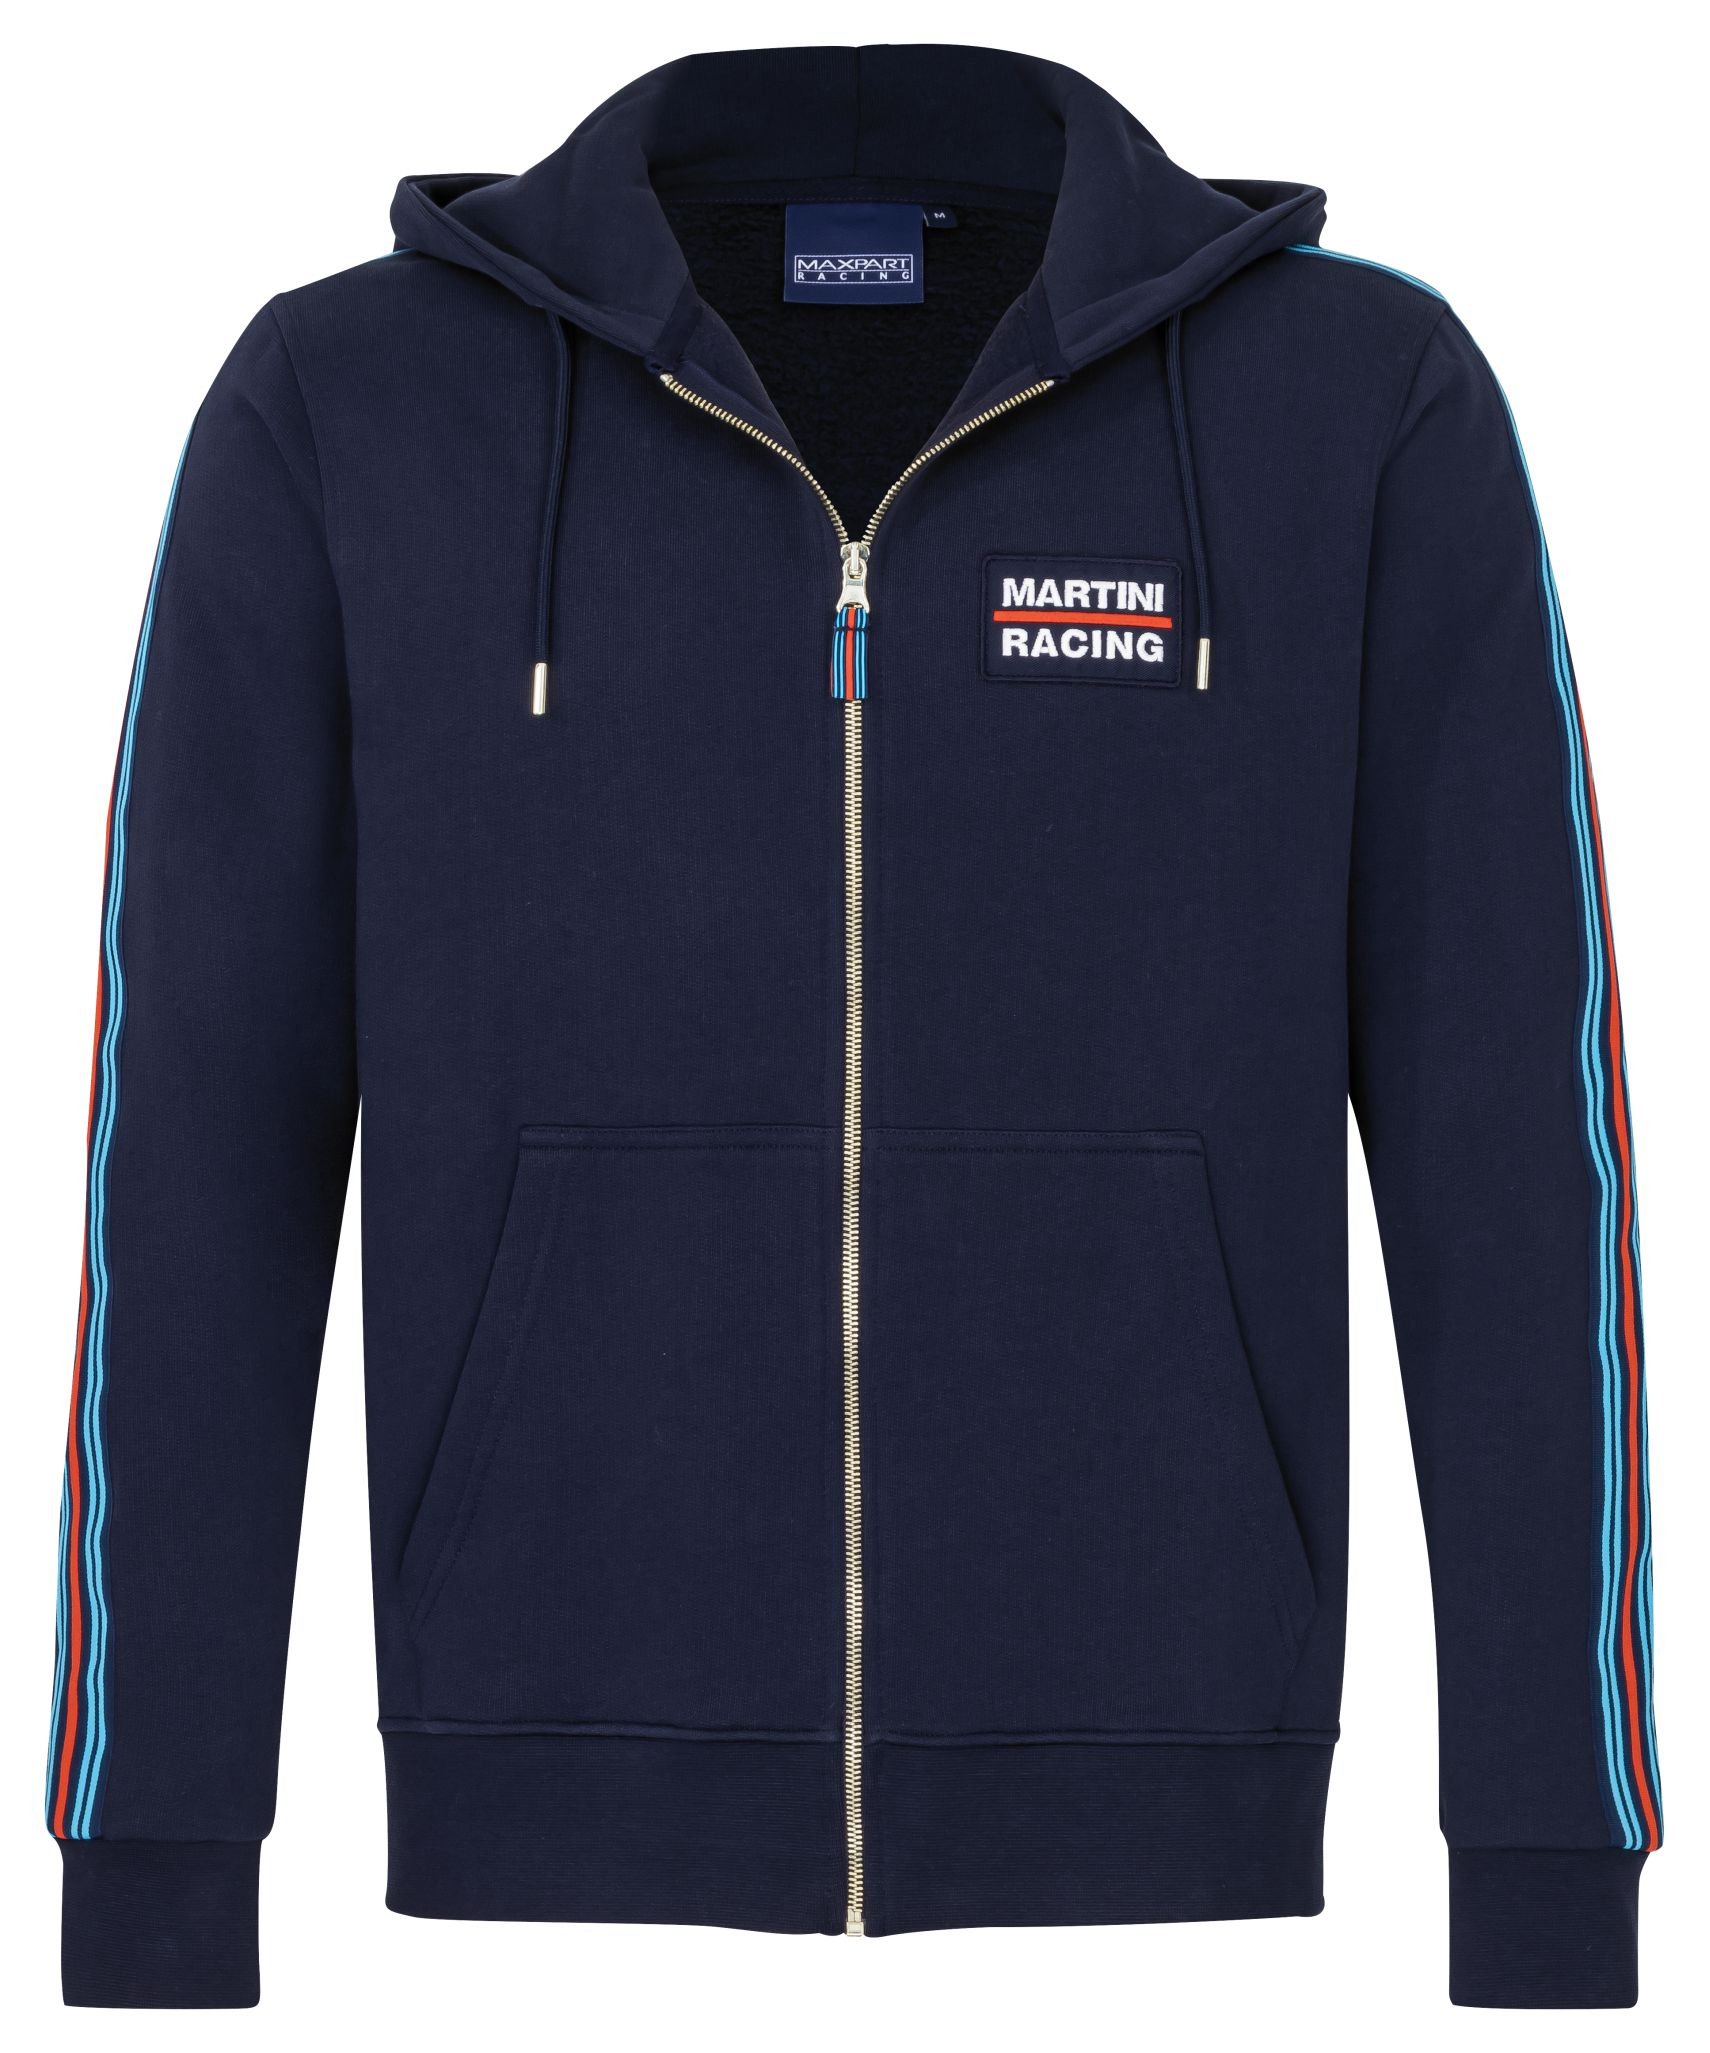 MARTINI RACING Stripes Hoodie